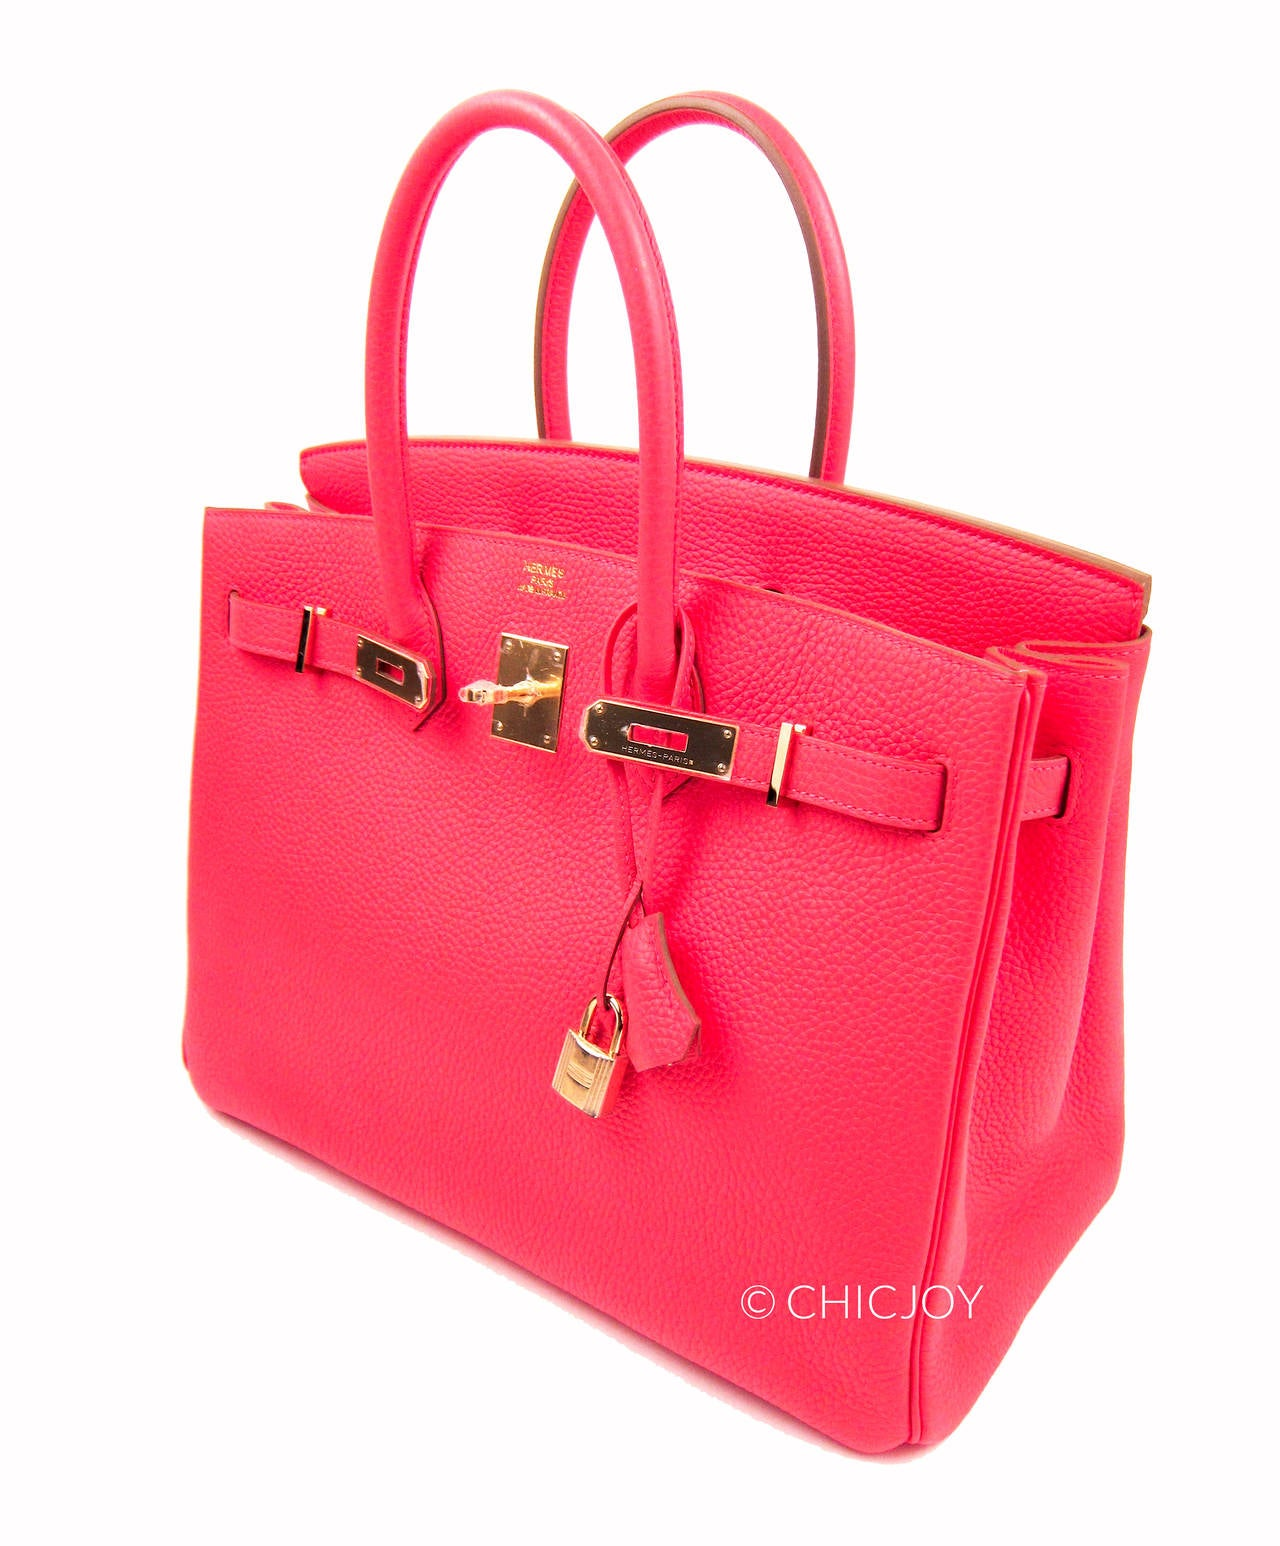 Hermes Rose Jaipur 35cm Birkin Gold Hardware GHW GLOWING 4